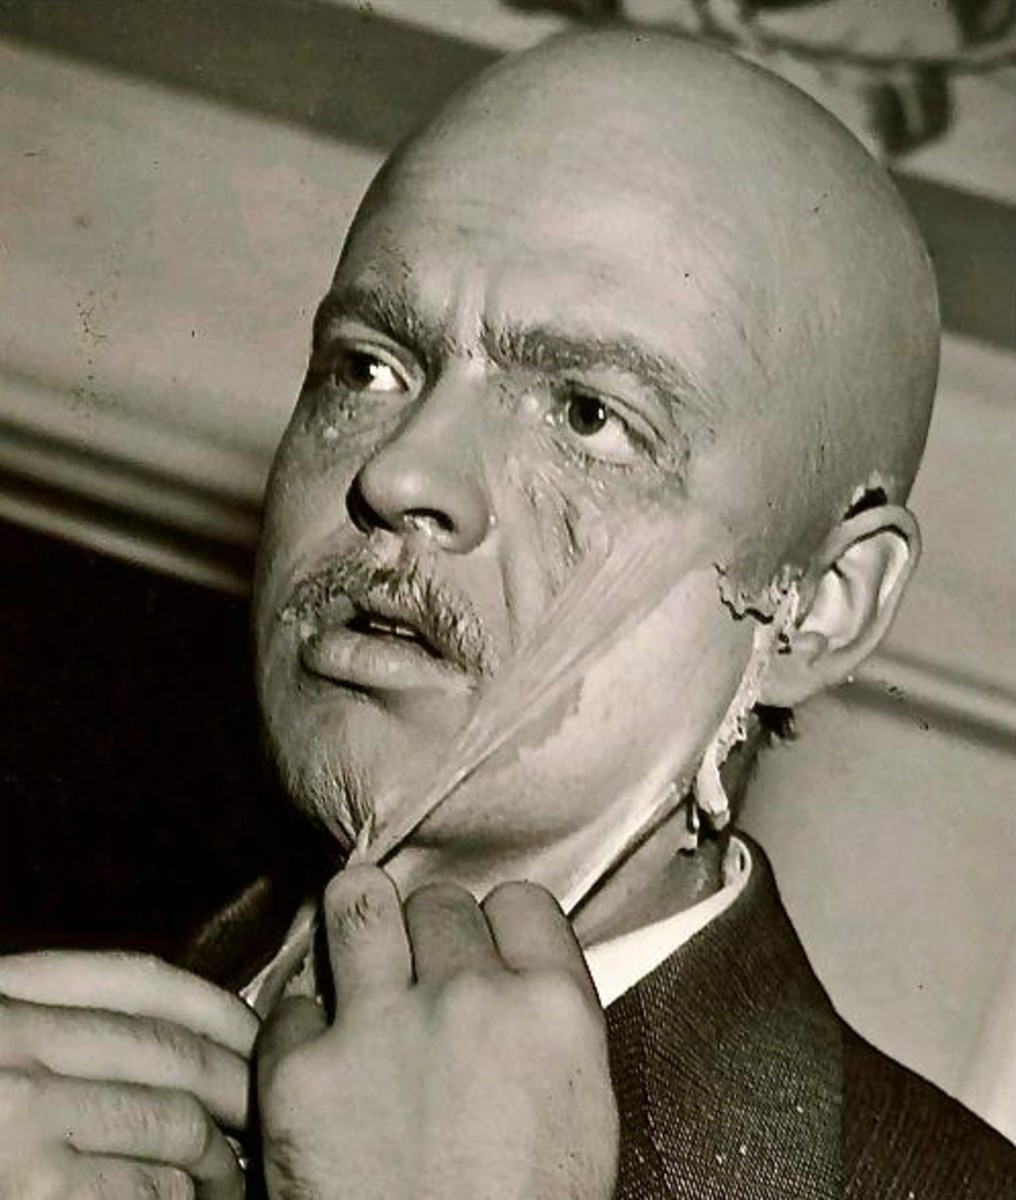 Welles' performance as Kane, enhanced by stunning makeup and prosthetics, is utterly captivating as he portrays the character through his life